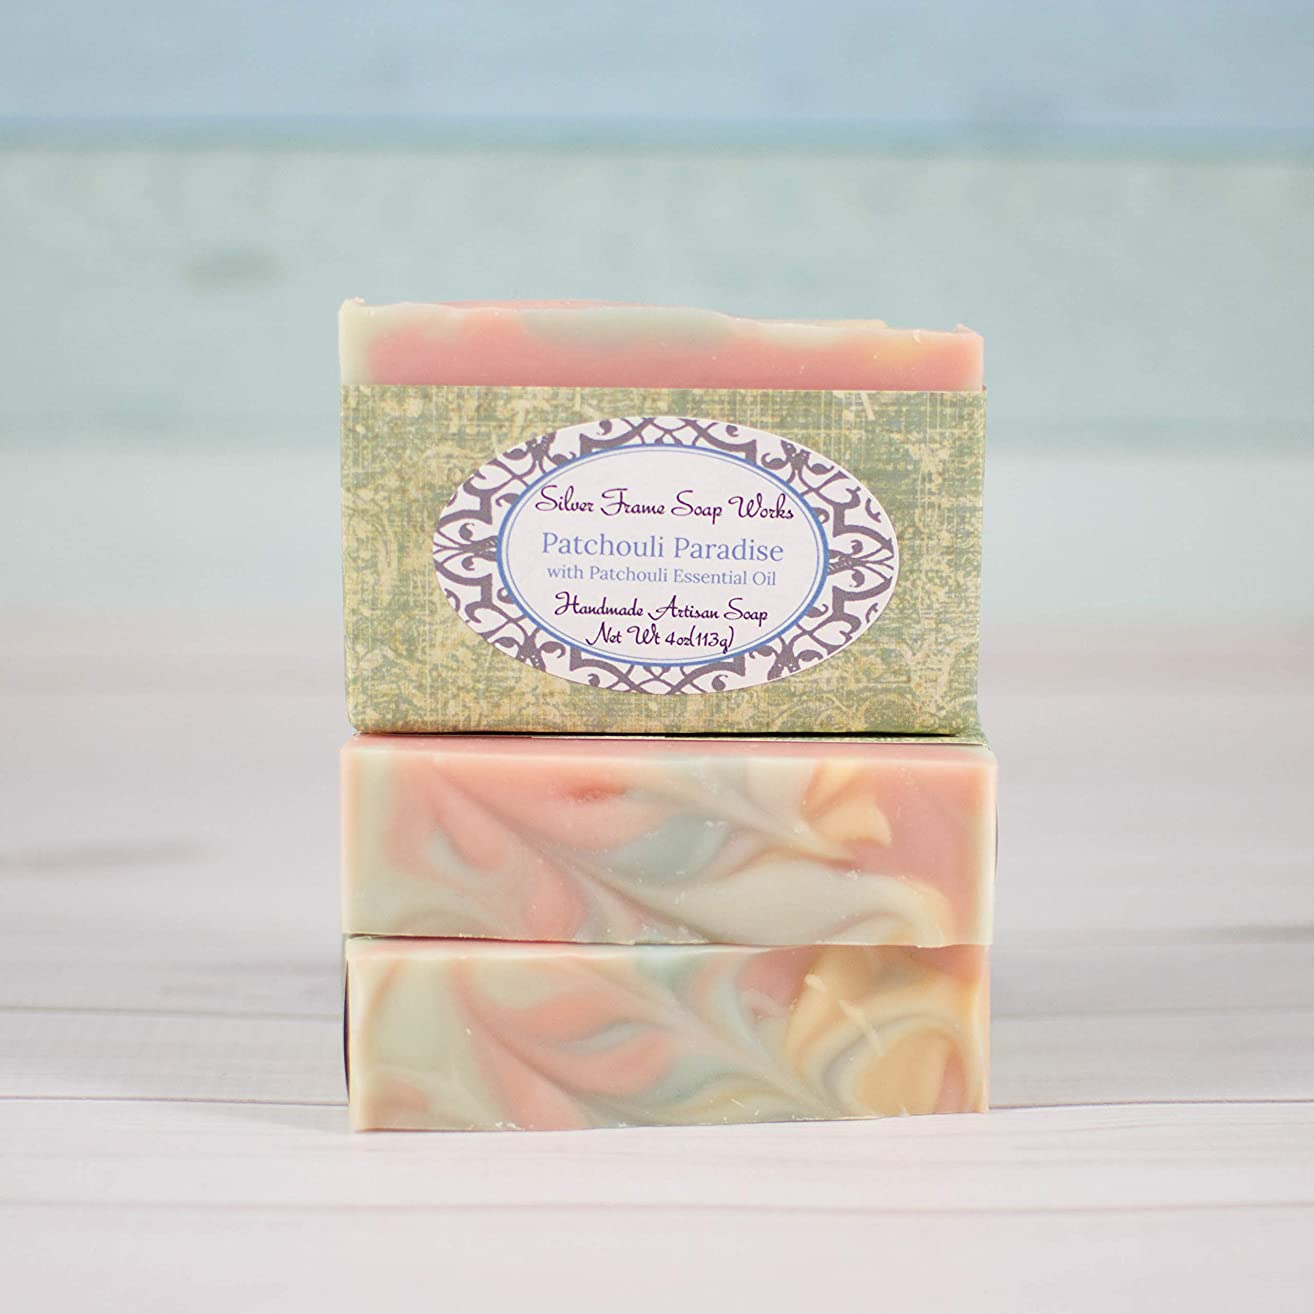 Handmade Patchouli Soap - 4 ounce bars with Patchouli Essential Oil